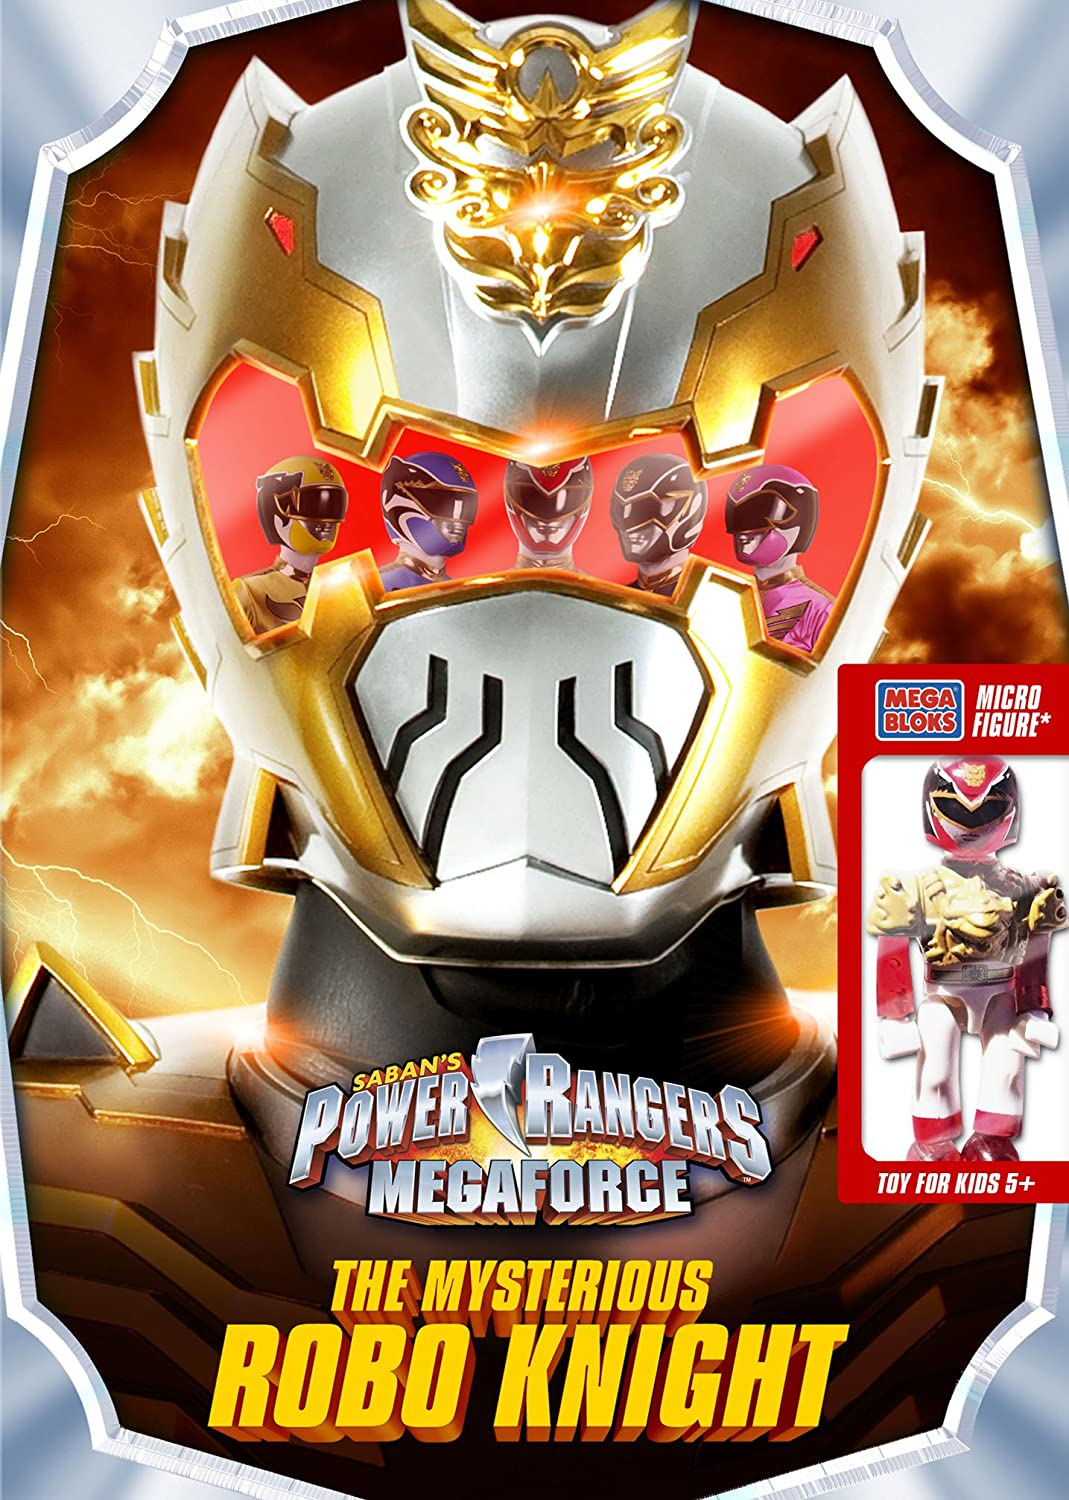 Power Rangers Megaforce: The Mysterious Robo Knight